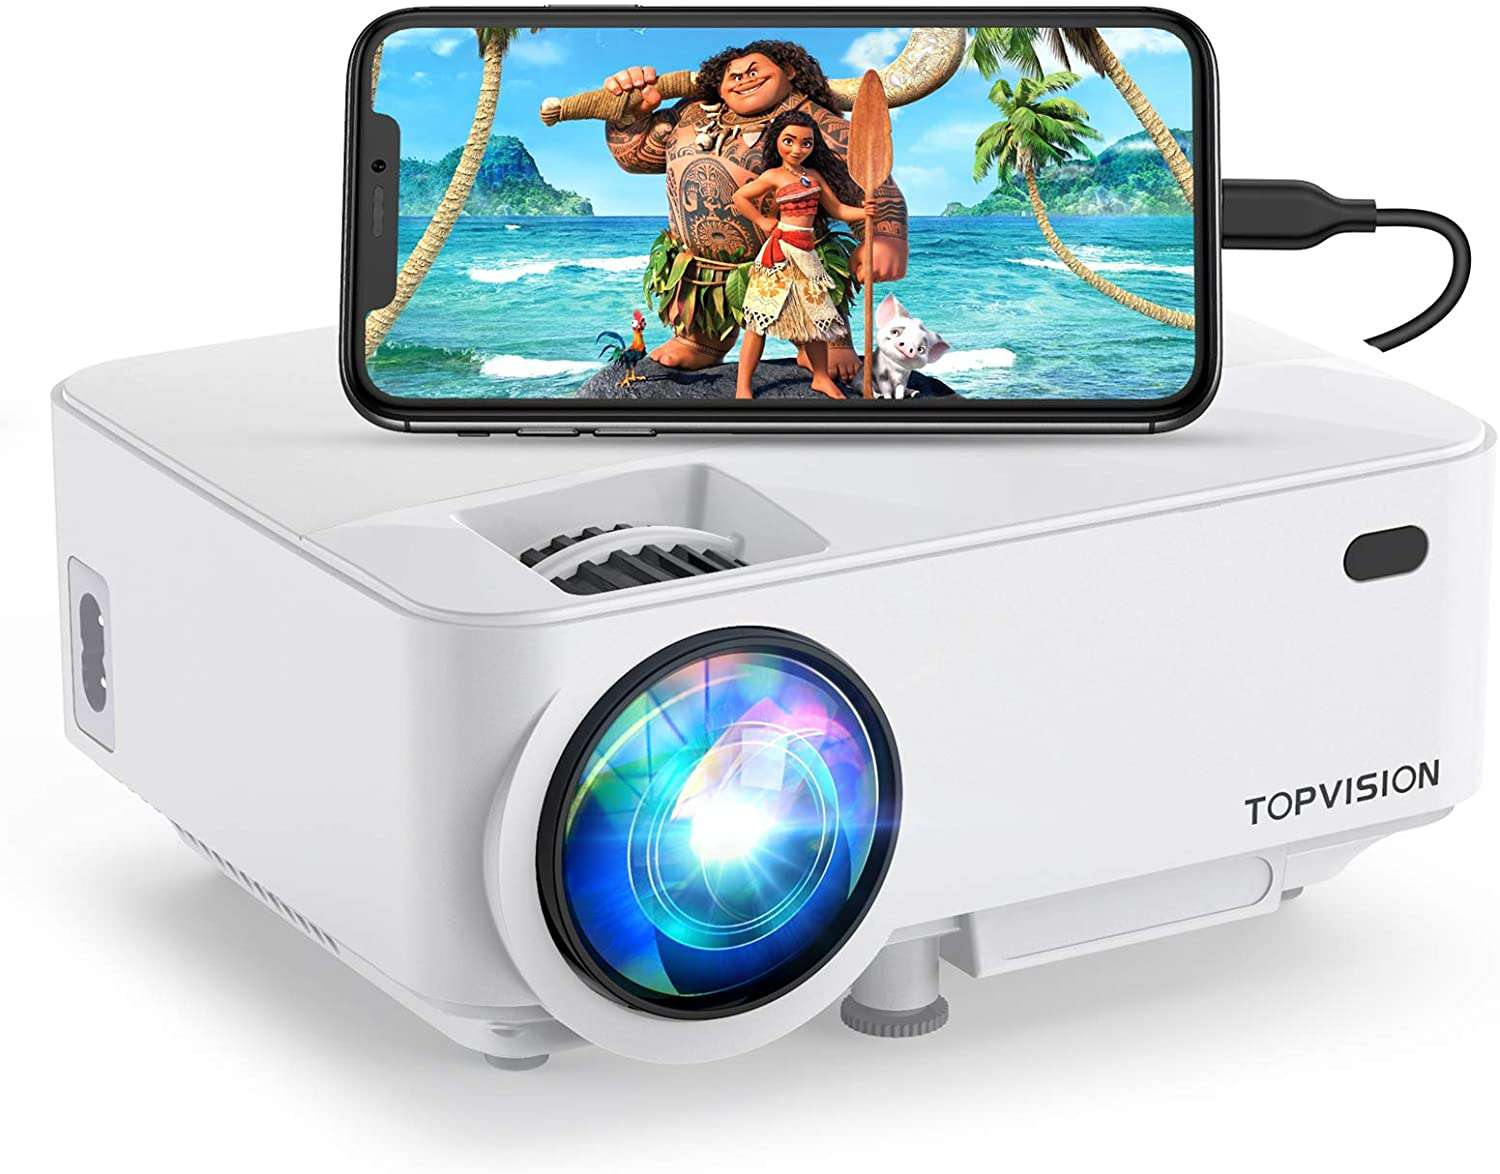 The Topvision 4000LUX projector is a great portable projector.